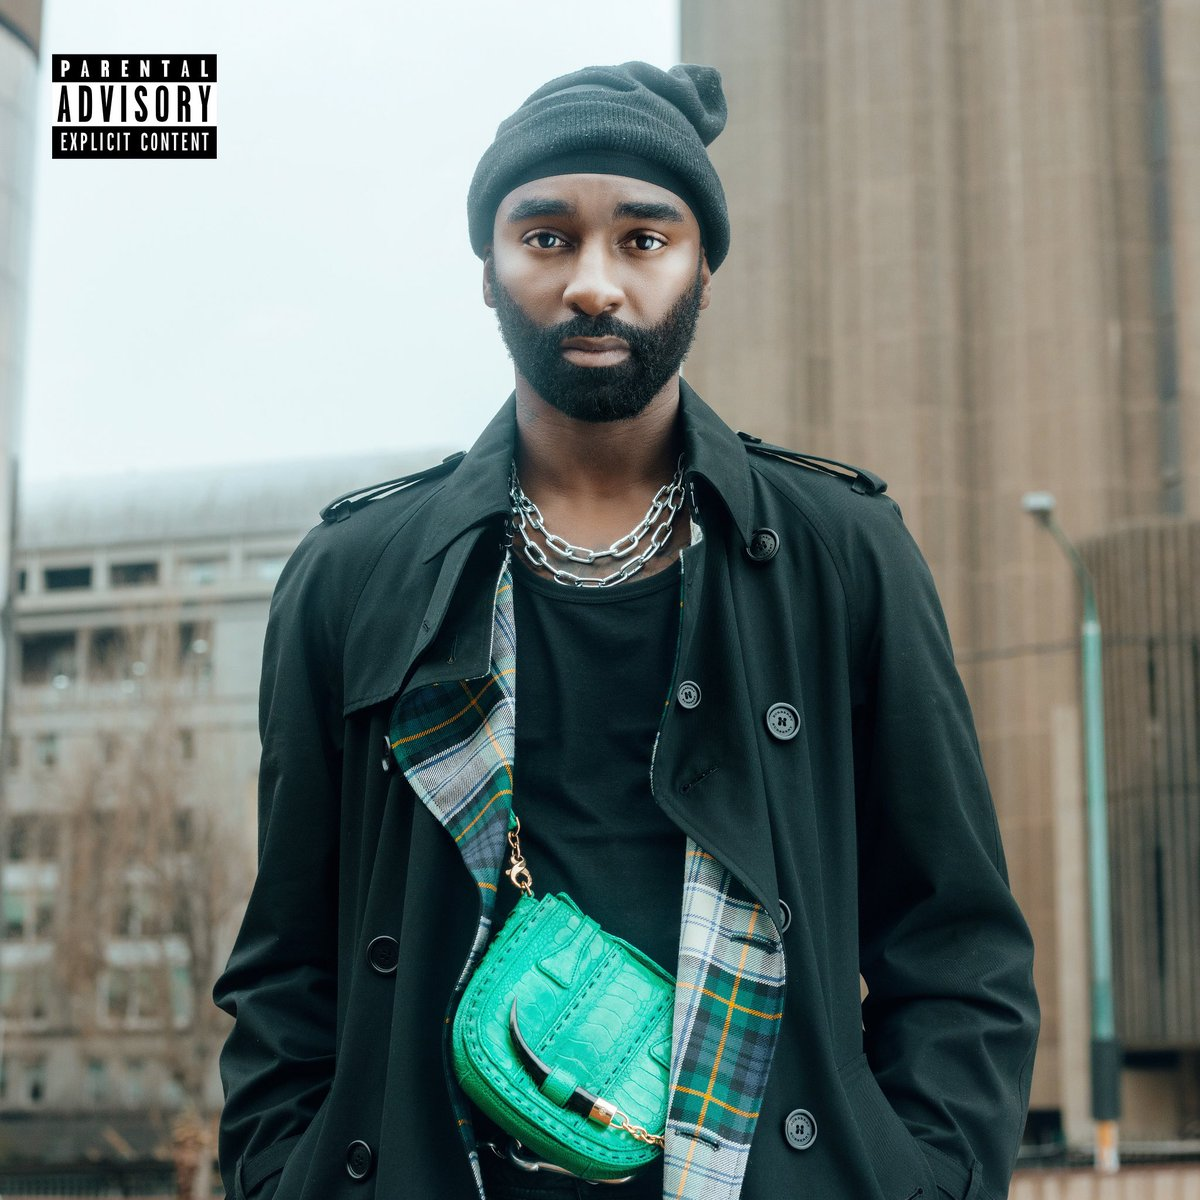 riky rick New Riky Rick 'I CAN'T BELIEVE IT (MACOINS)' Single Dropping Next Week [Listen] DmZuVzpX0AAKVjx